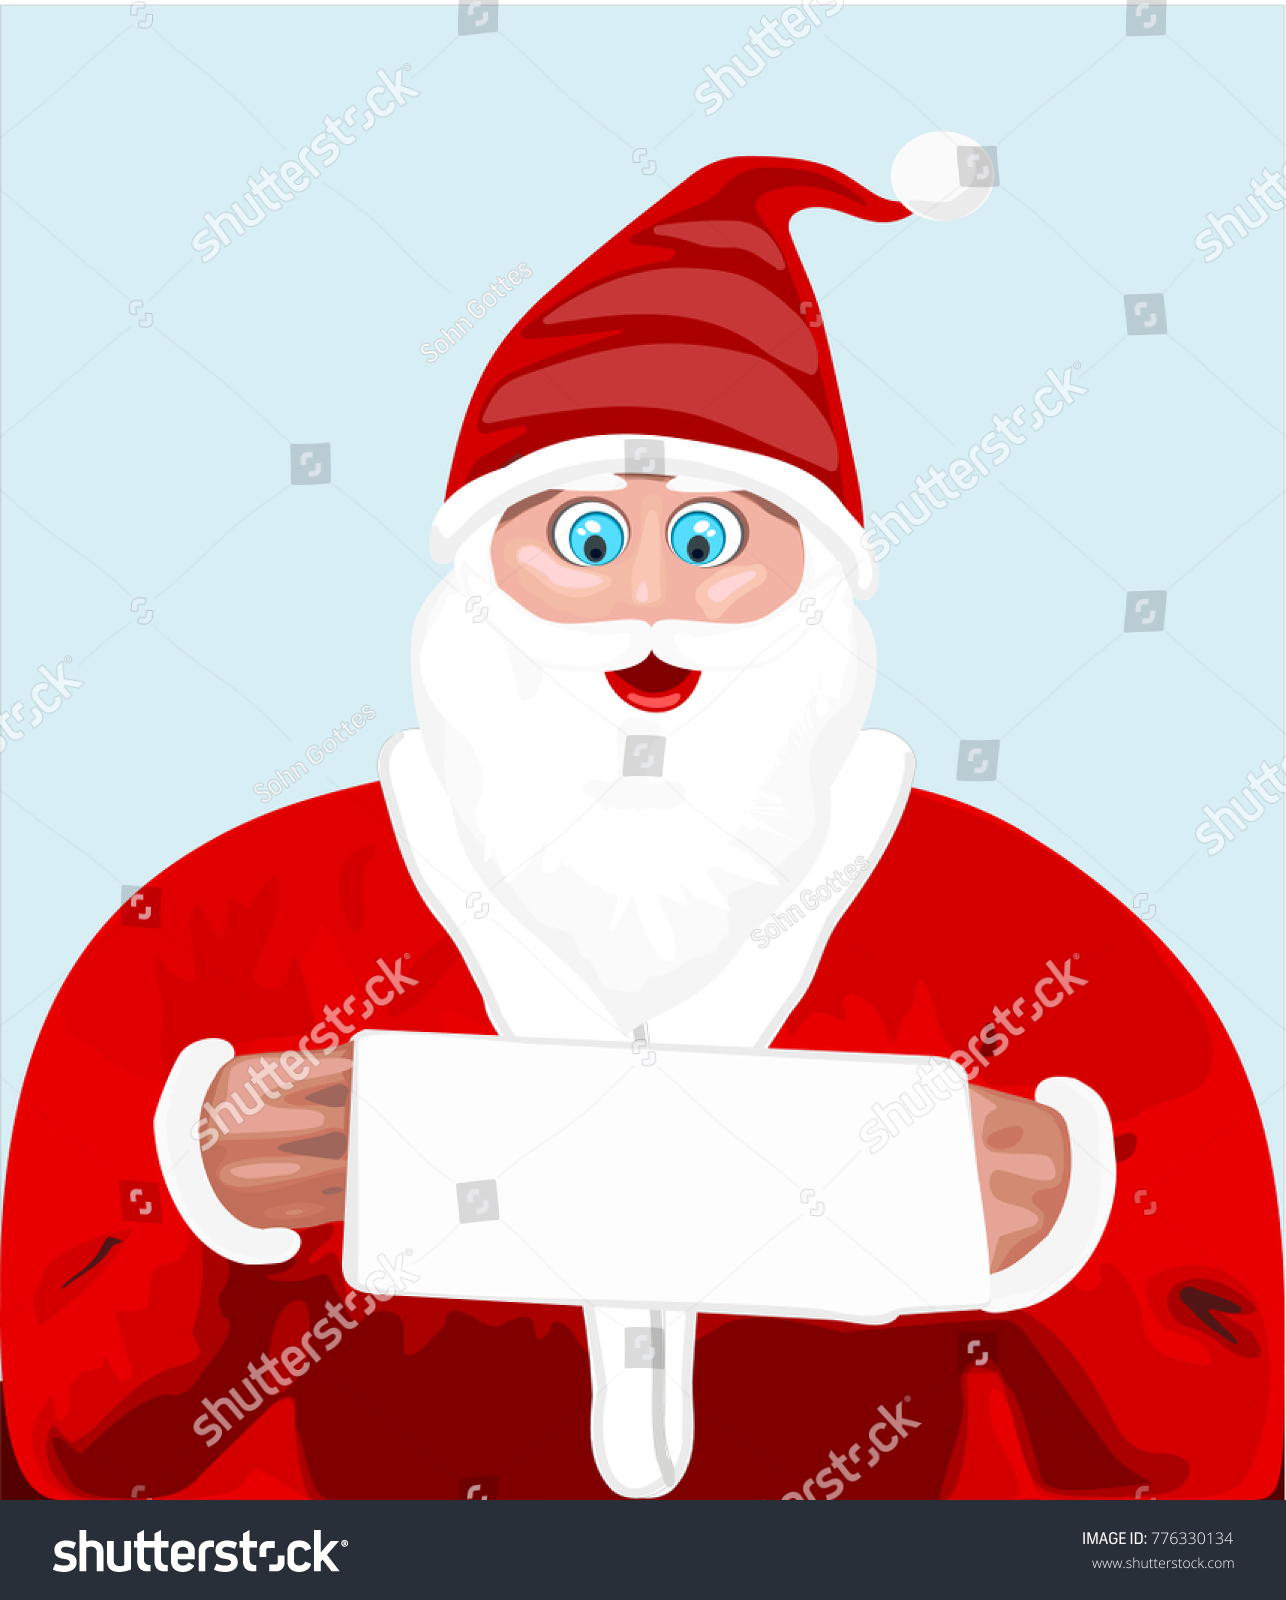 stock-vector-santa-reading-gift-request-